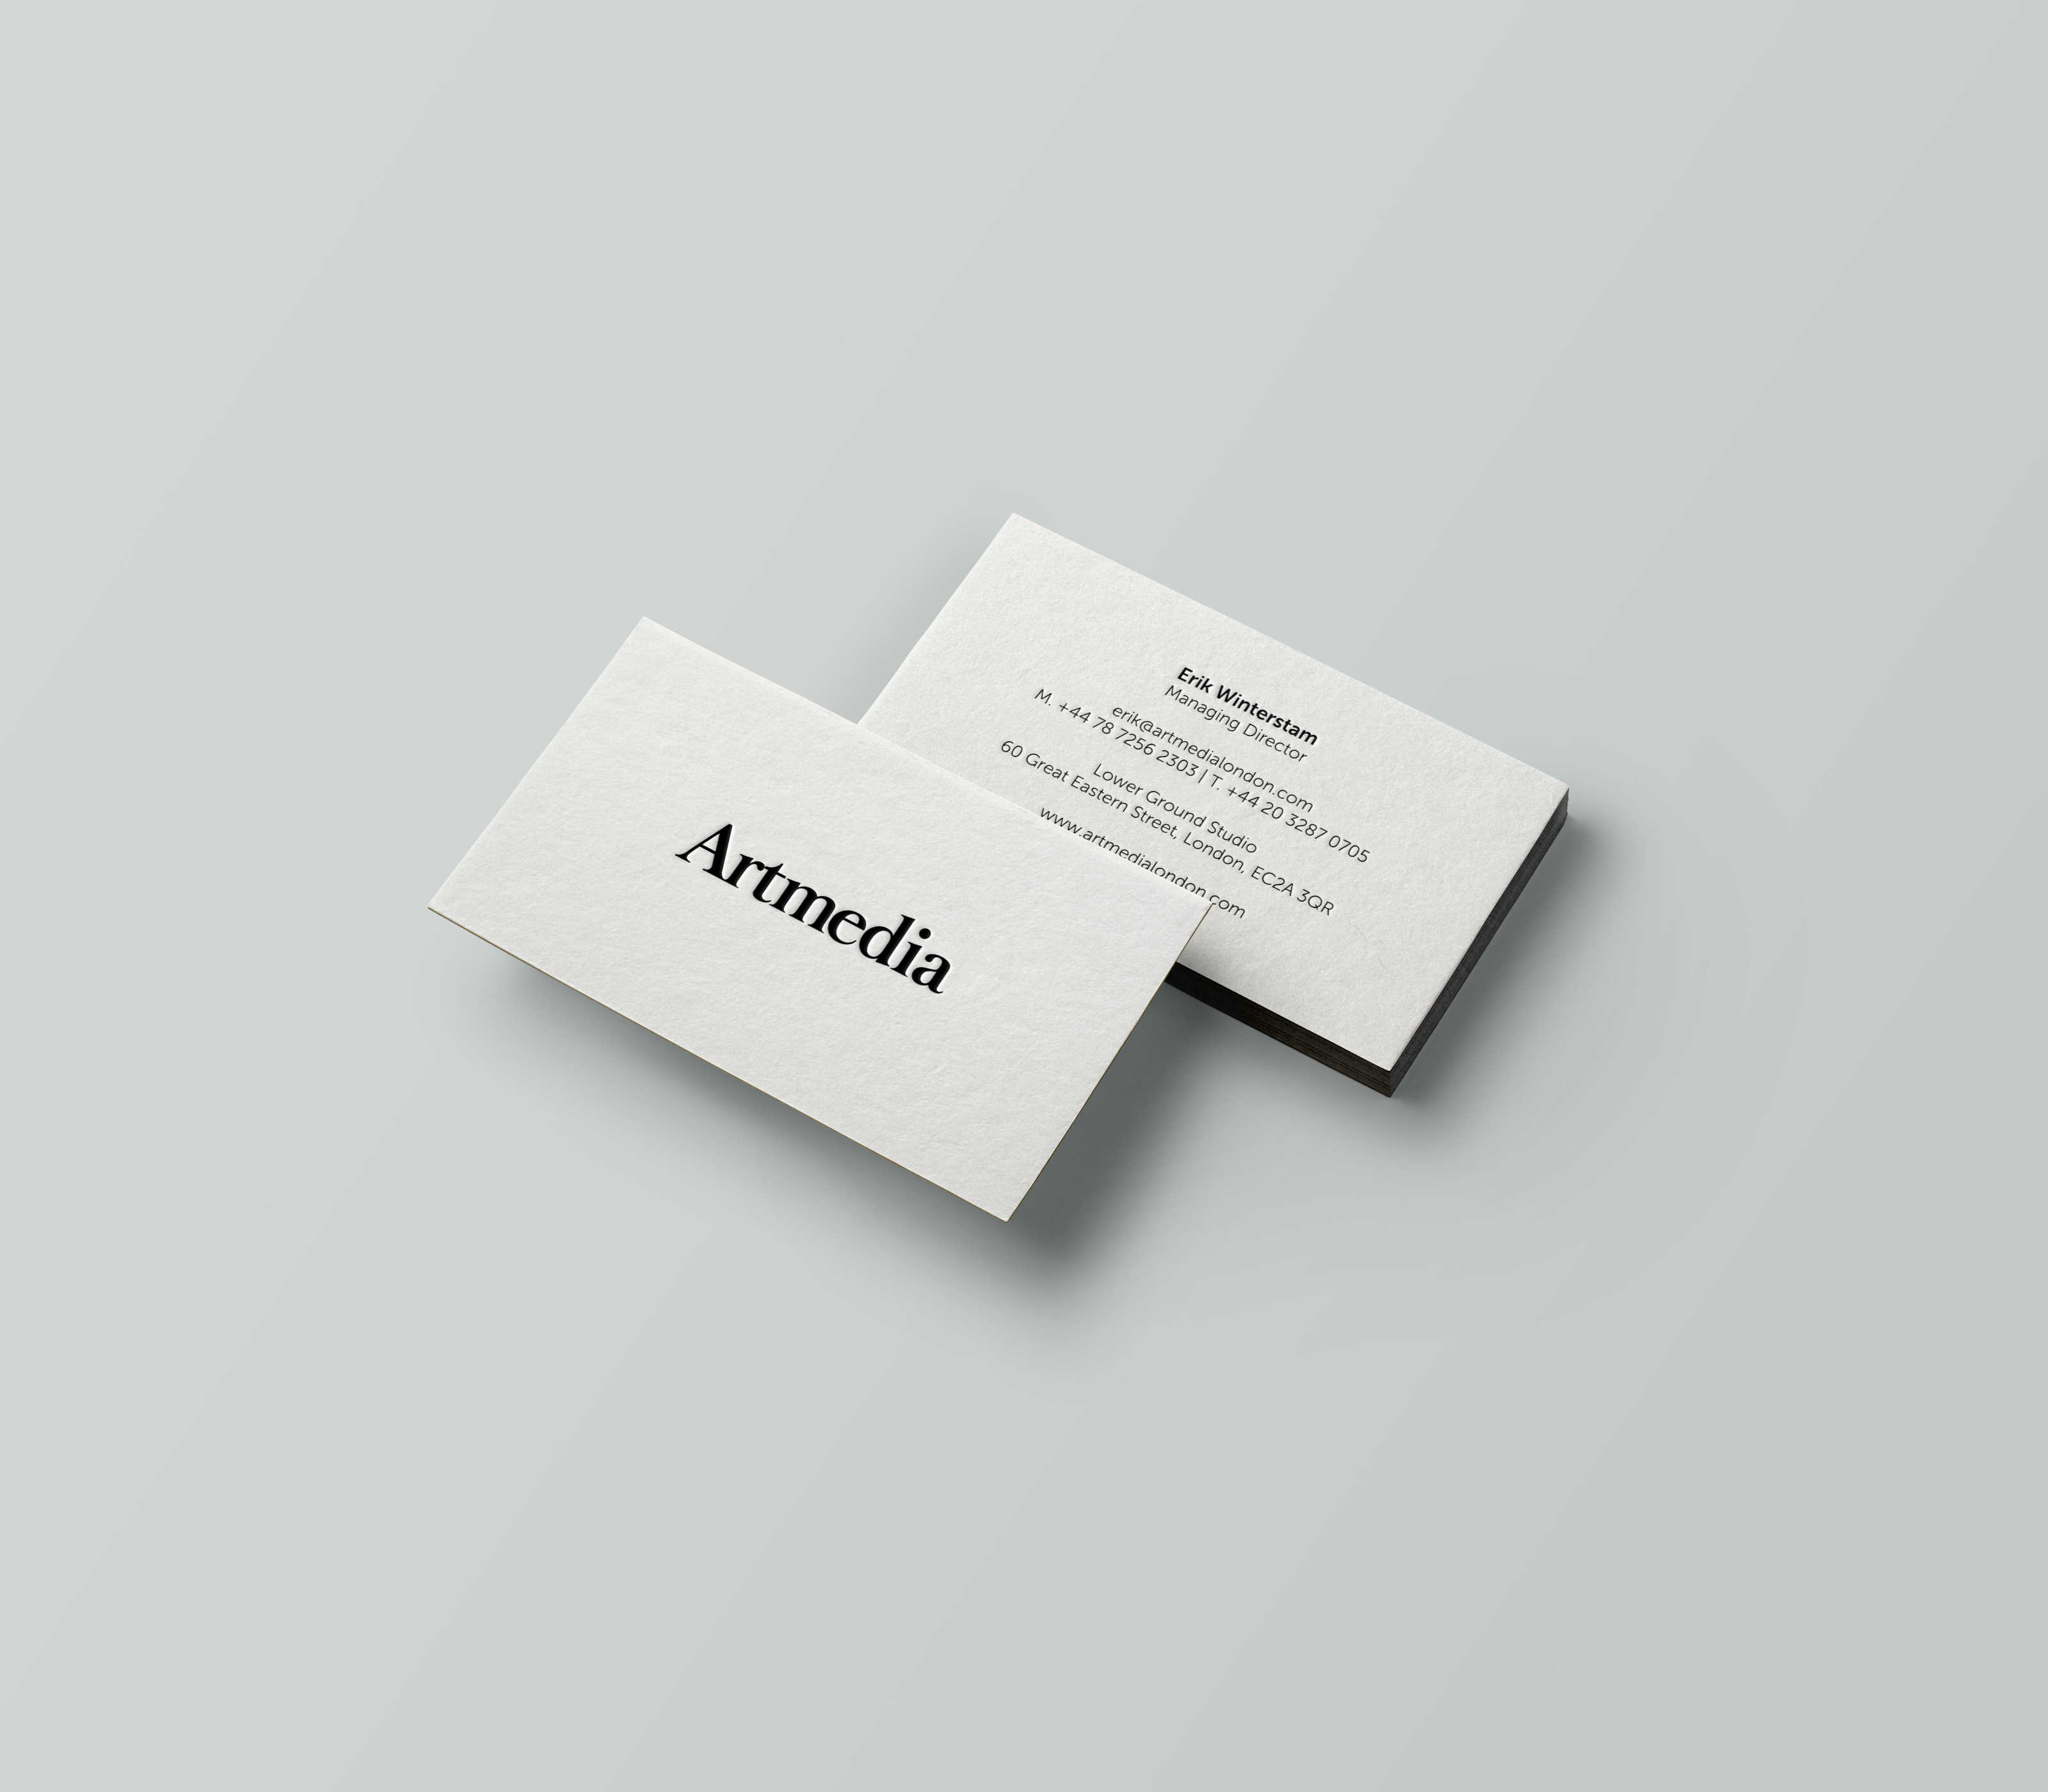 graphic artmedia business card